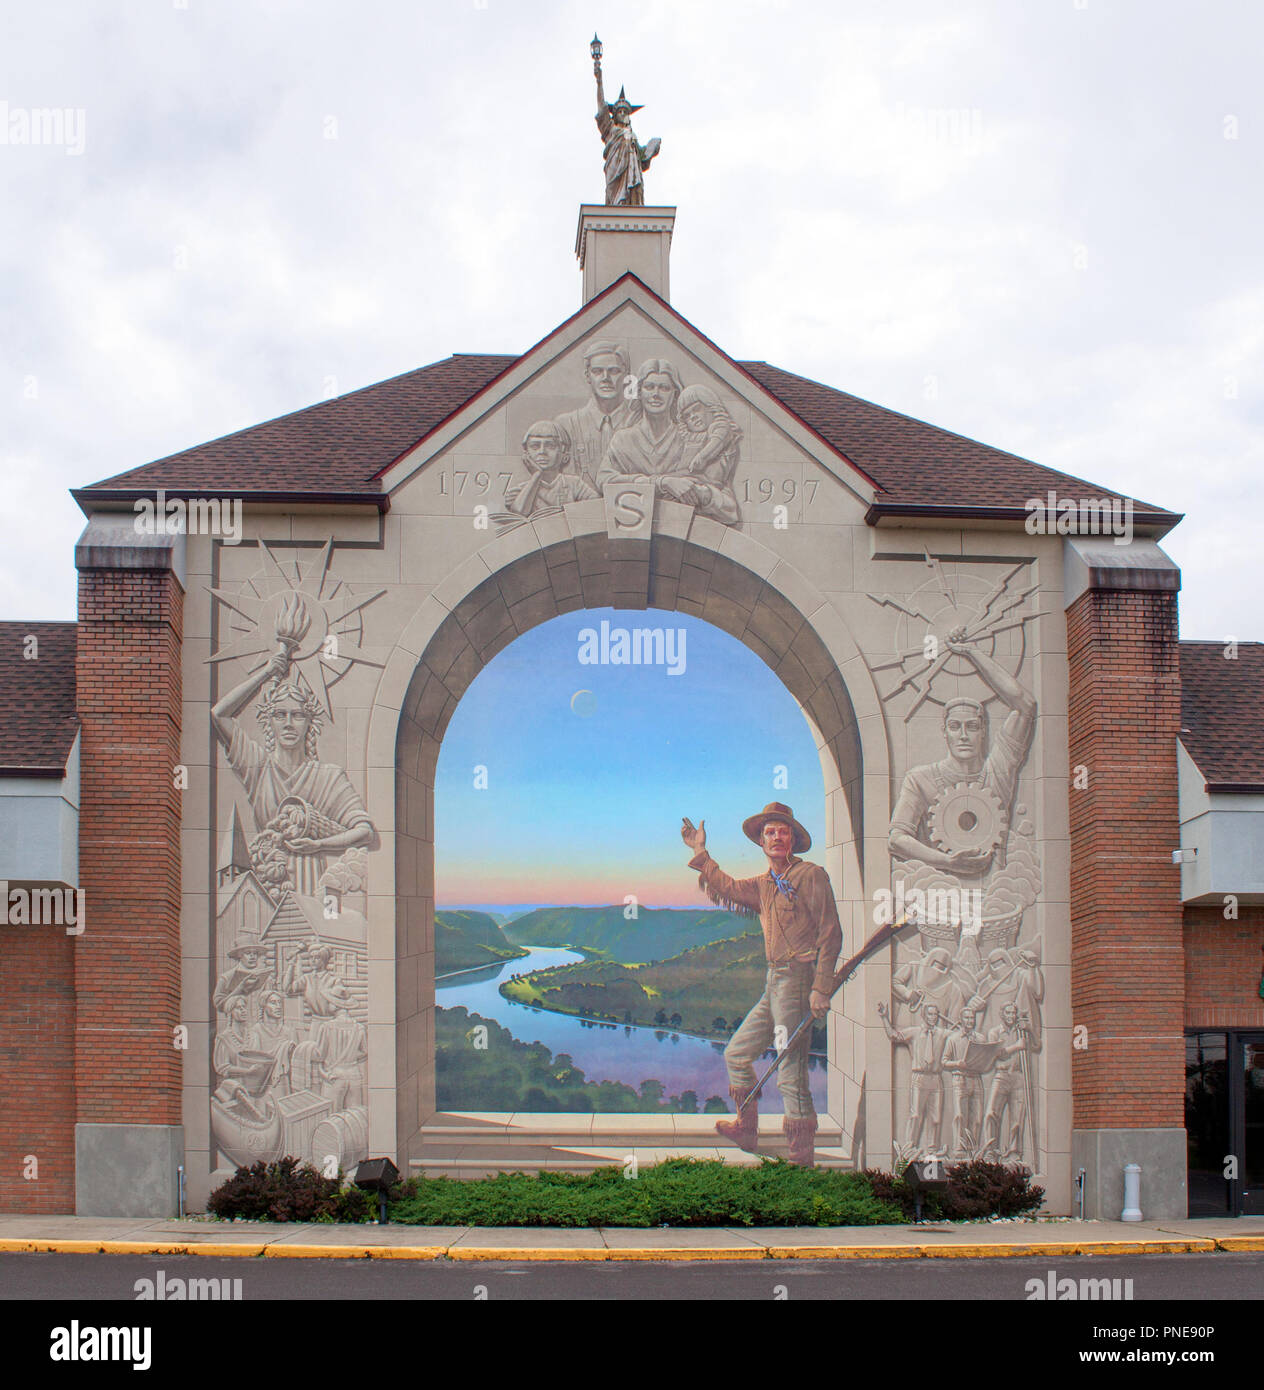 Pioneer Days Mural in Steubenville, Ohio - Stock Image